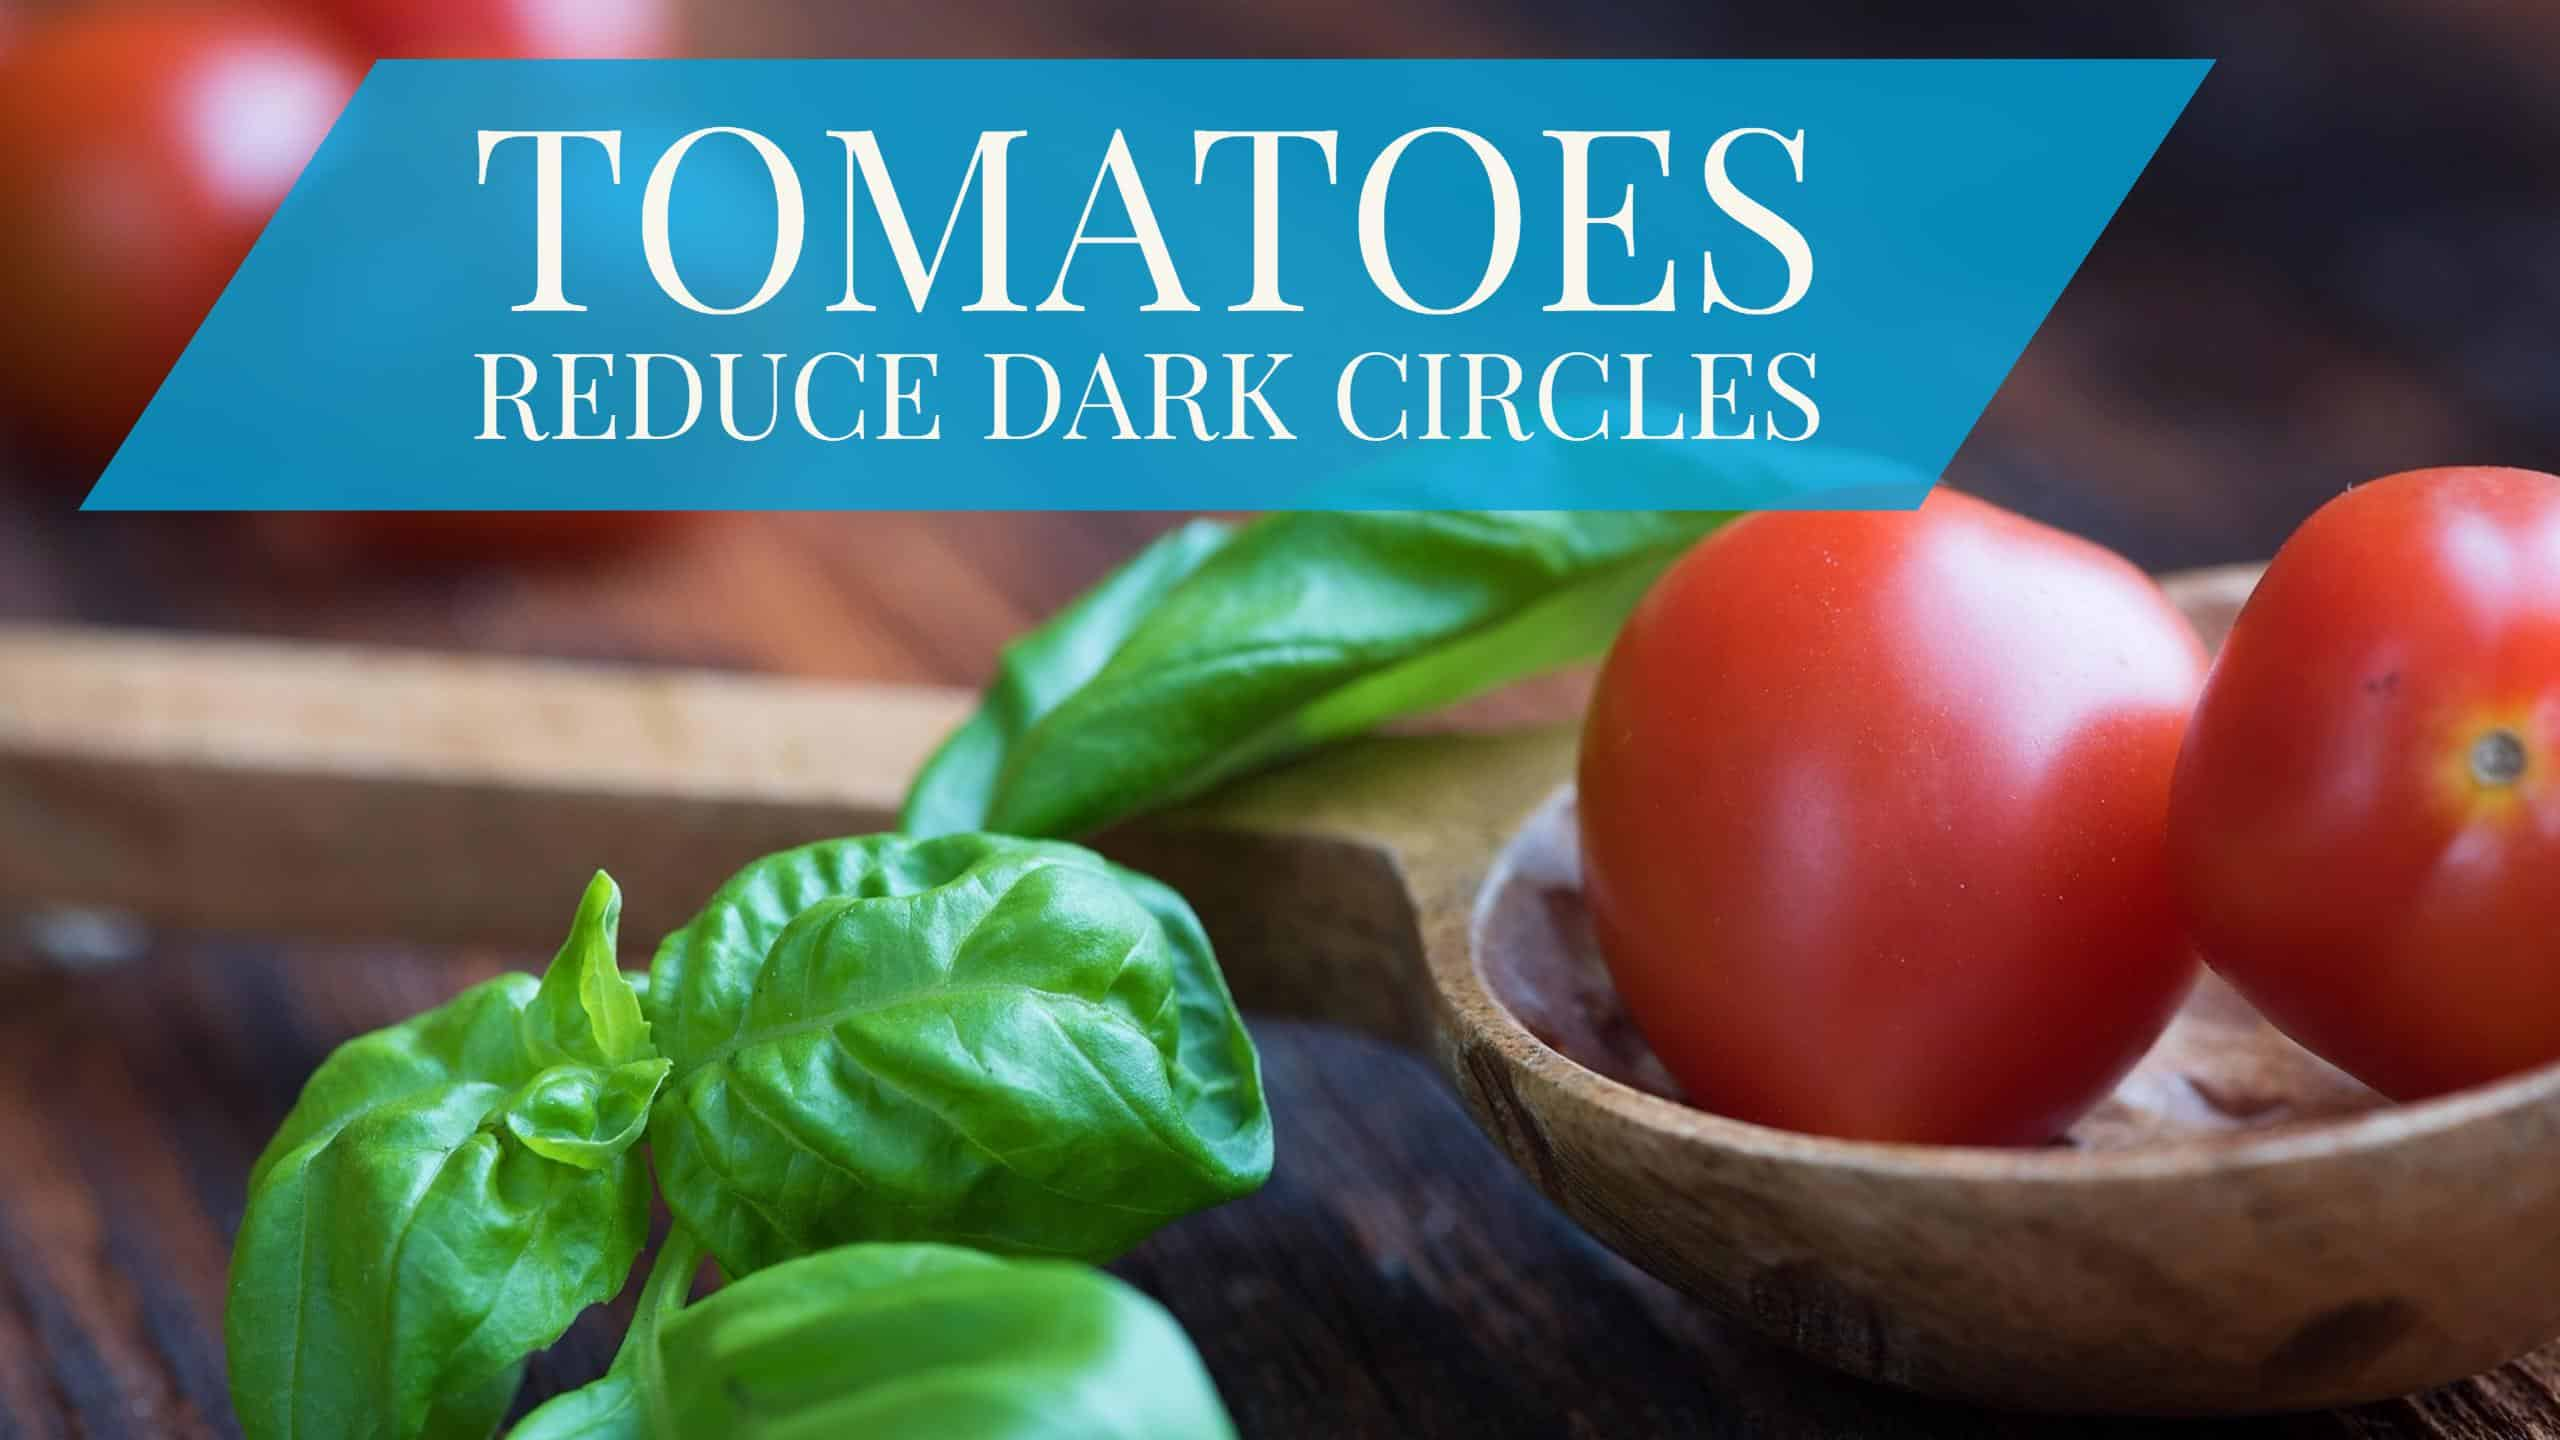 How Tomatoes Reduce Dark Circles